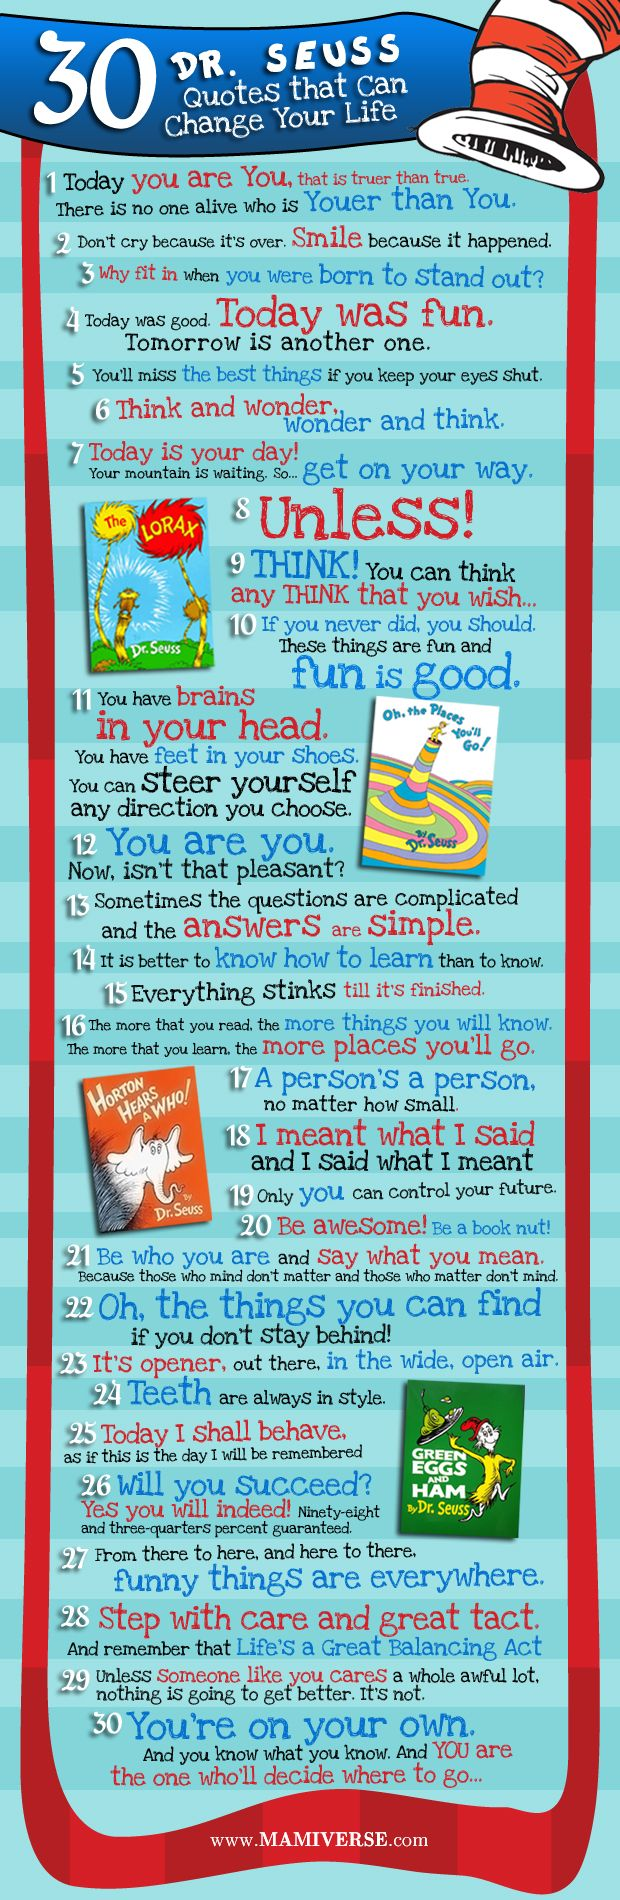 30 Dr. Seuss Quotes That Can Change Your Life | Typography ...